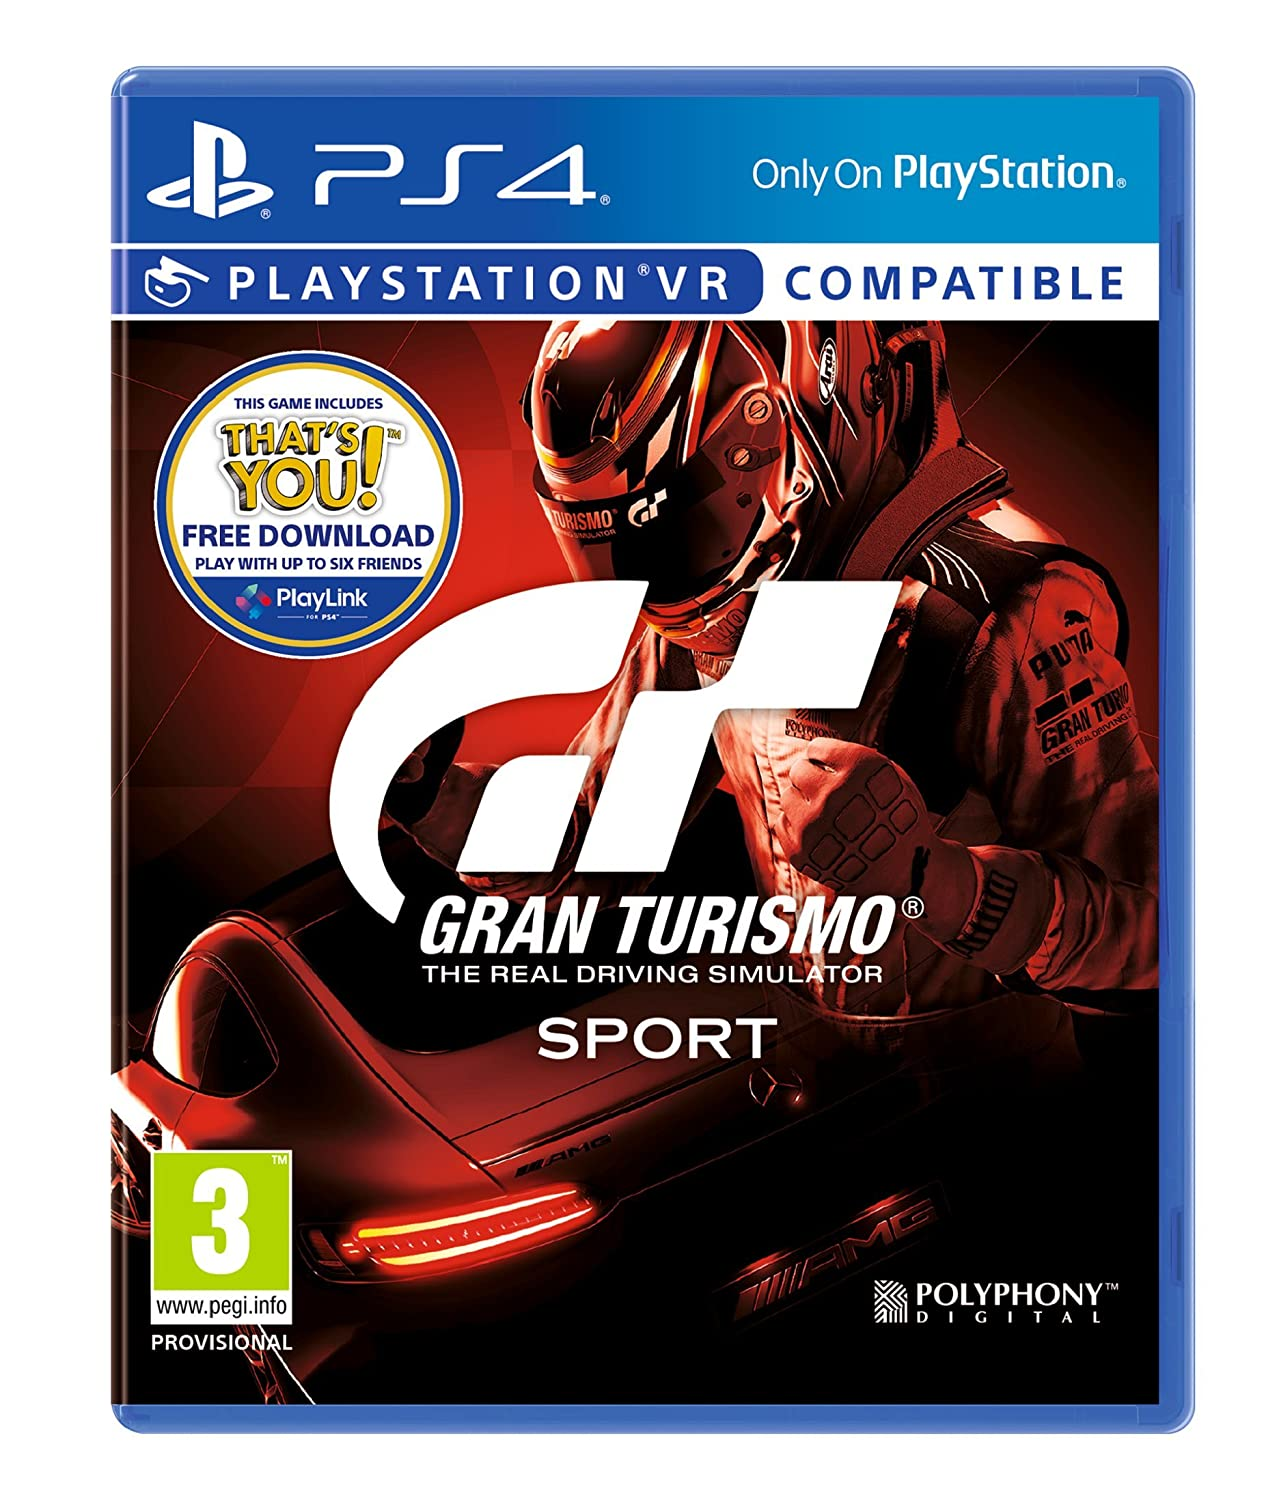 Sony Play Station Gran Turismo: Sport (Includes Free Download Of That's You)   Ps4 [Edizione: Regno Unito] by Playstation